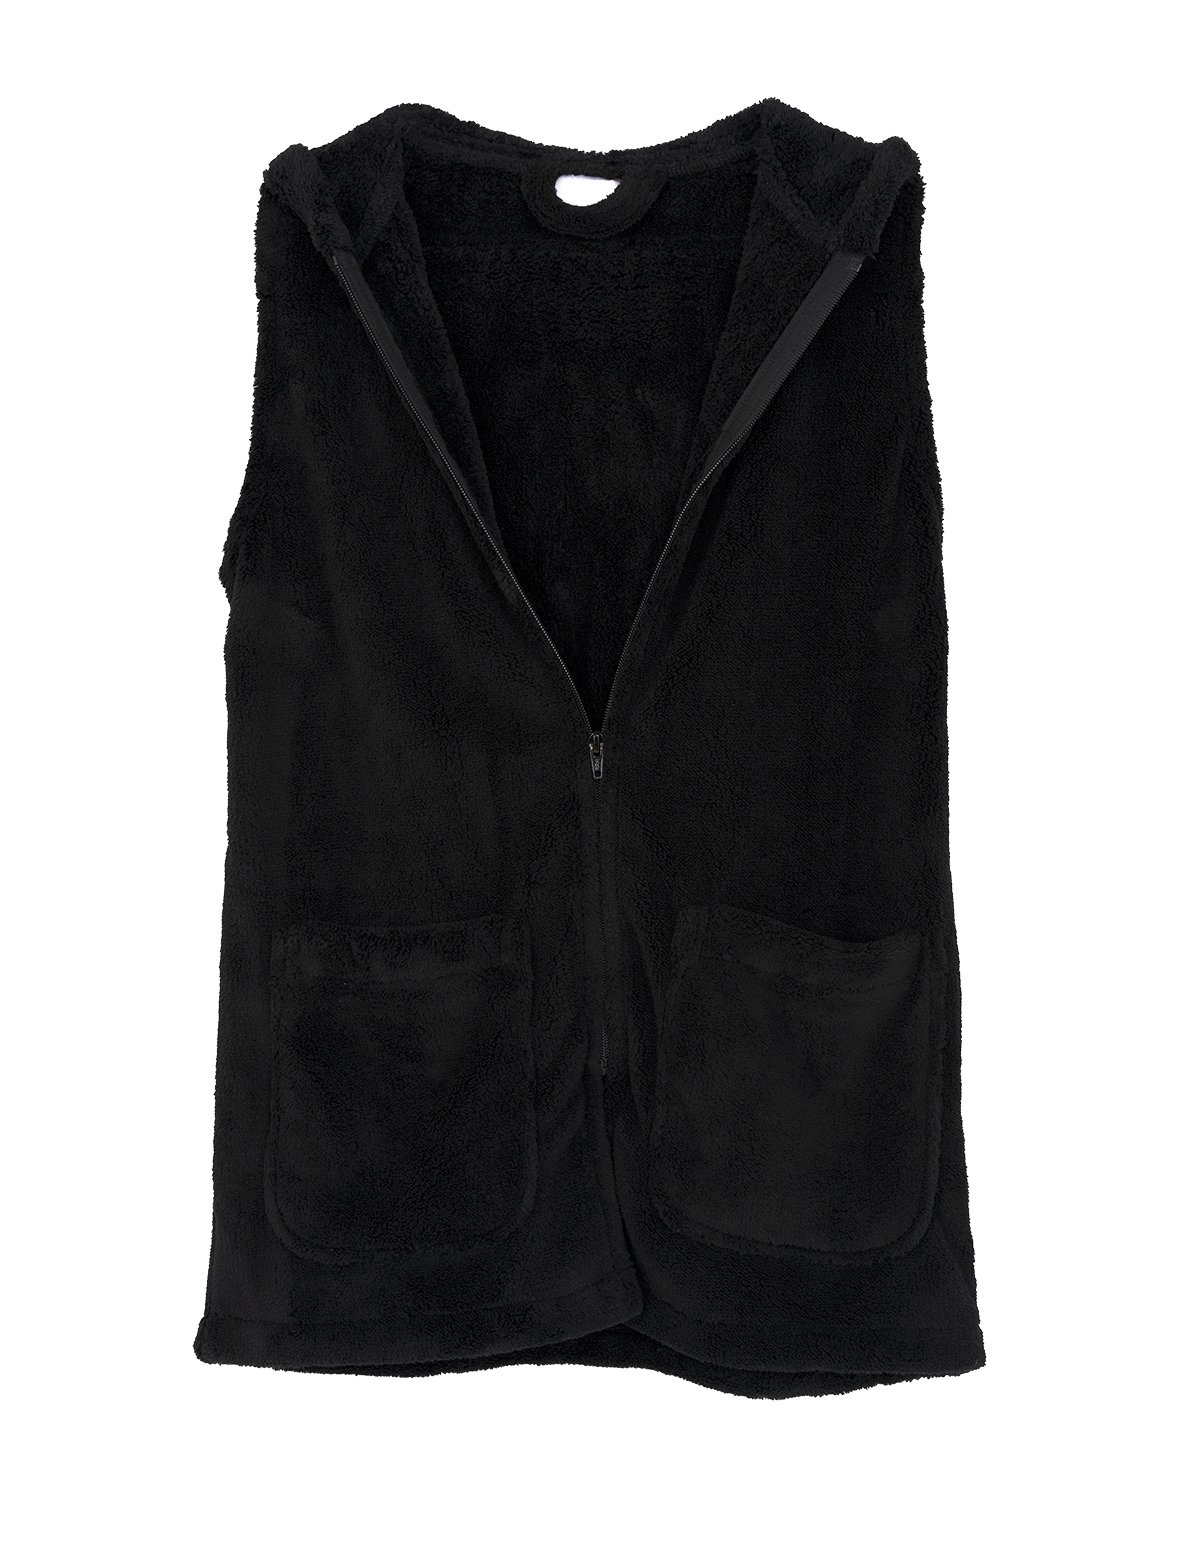 TowelSelections Women's Bed Jacket, Hooded Vest, Zip Front Cardigan Fleece Robe Large Black